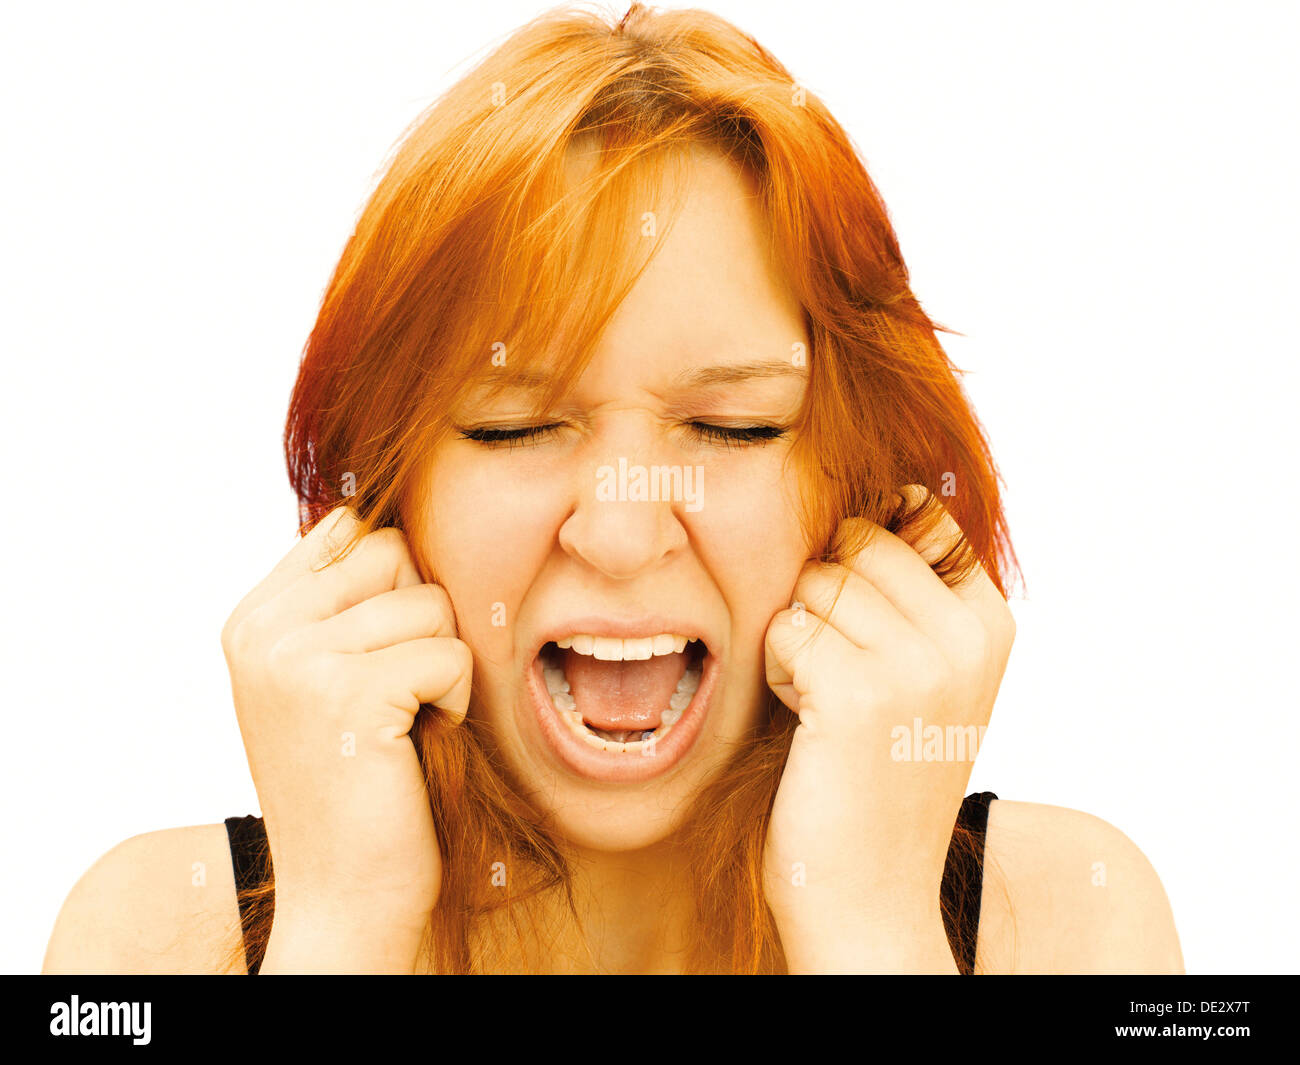 Portrait of a screaming, hysterical young woman - Stock Image